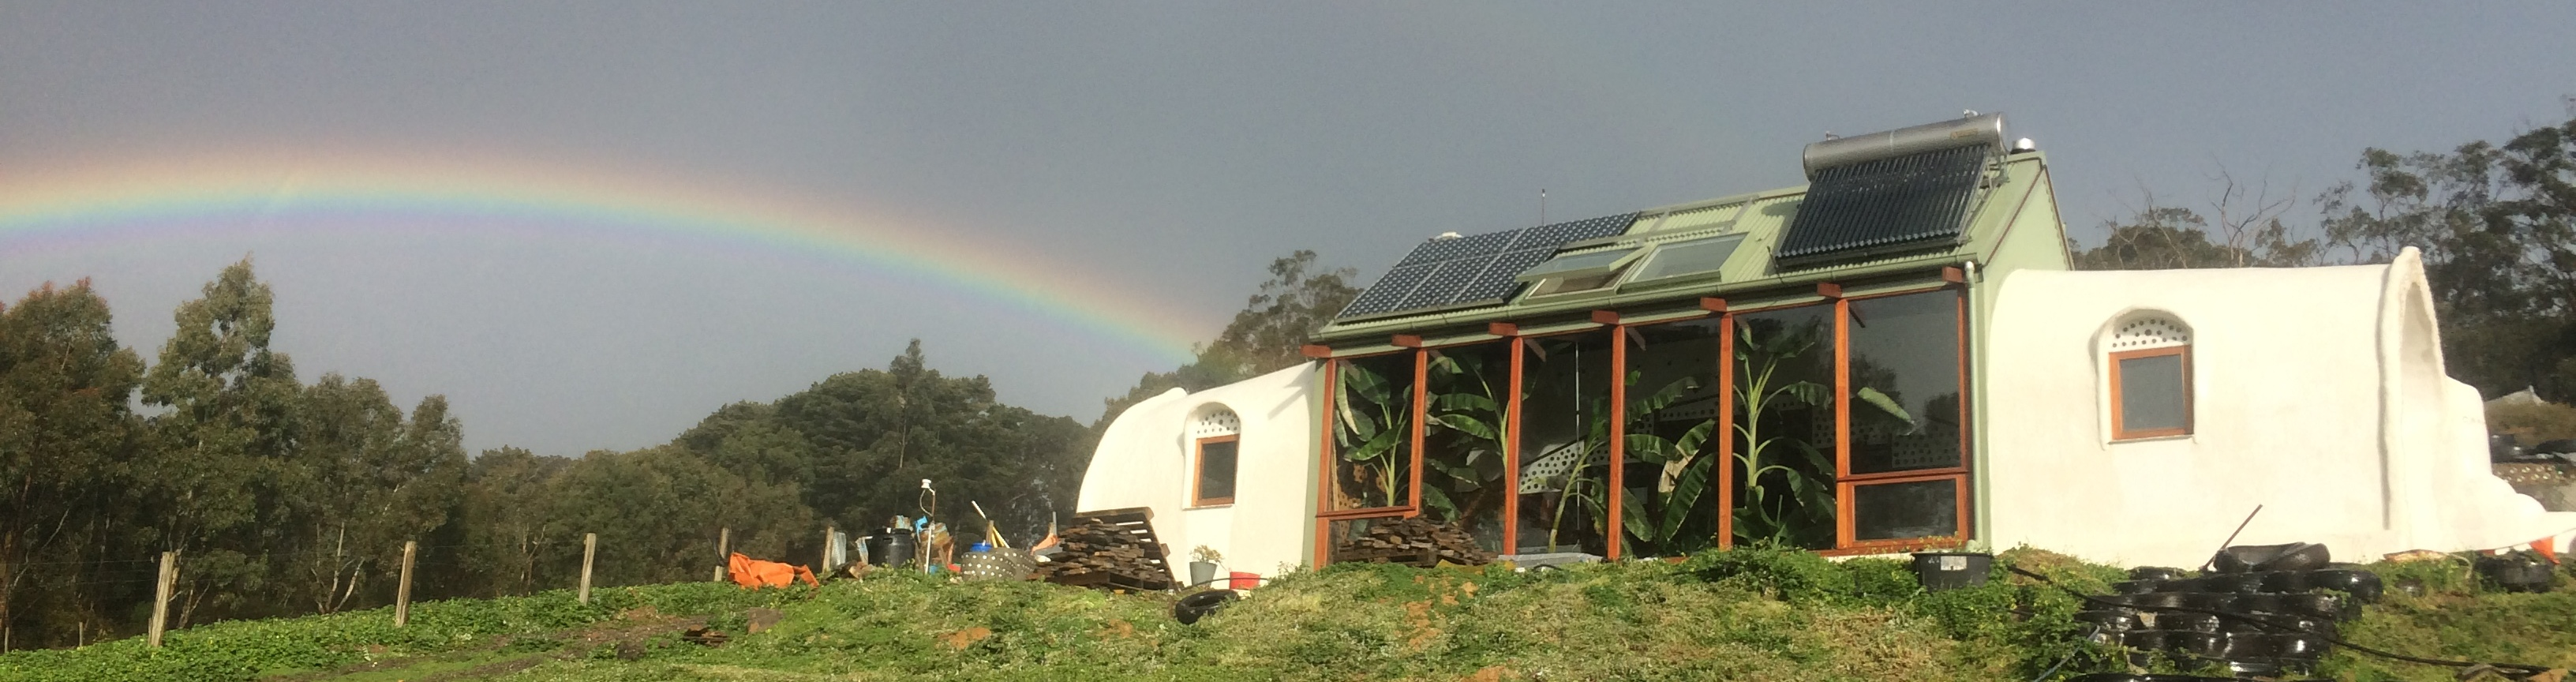 Projects Earthship Eco Homes